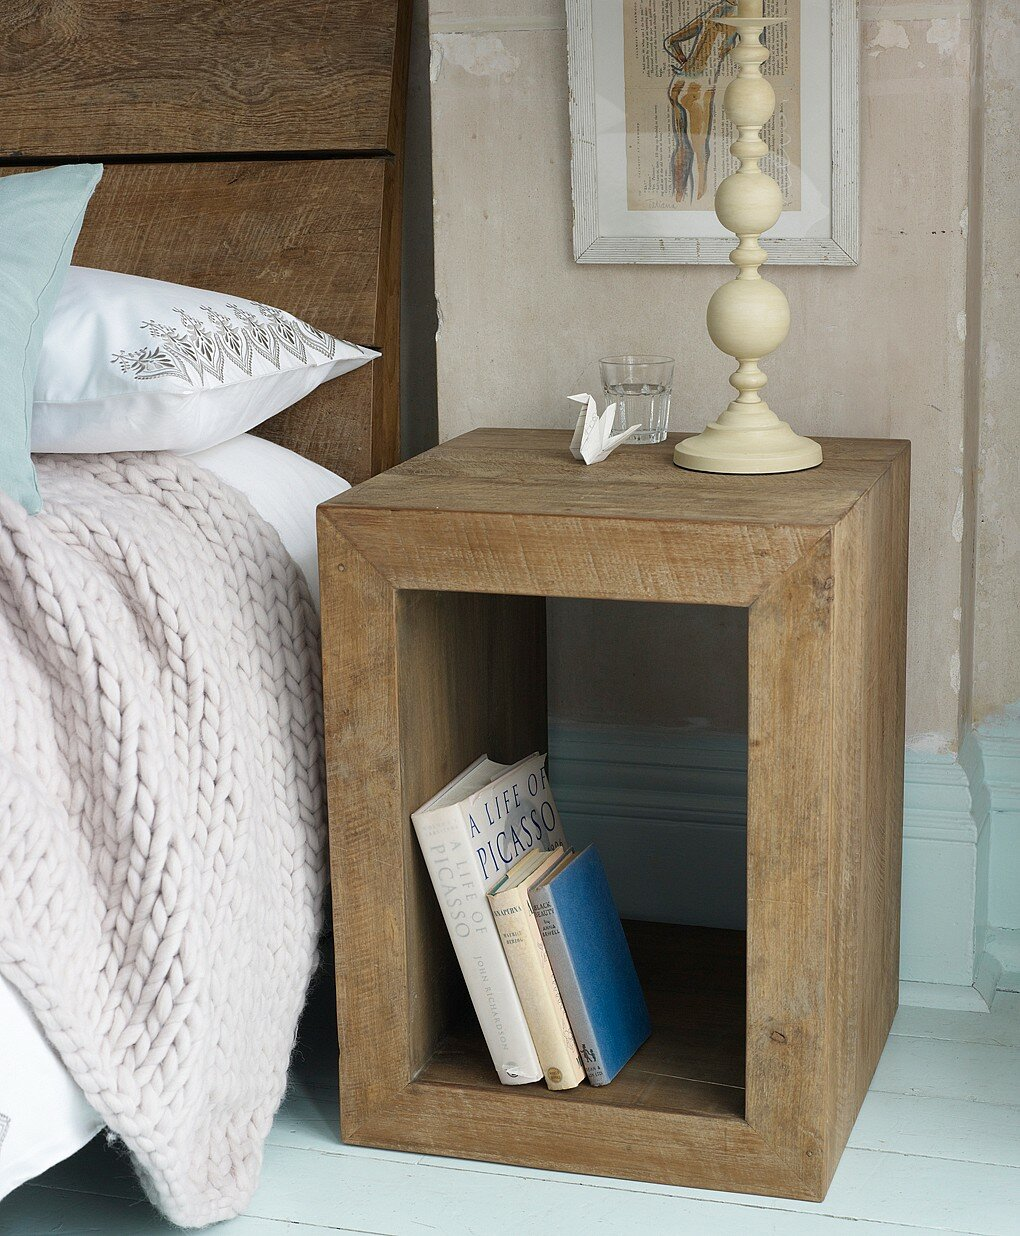 17 inspiring bedside table designs mostbeautifulthings for Modern end table ideas